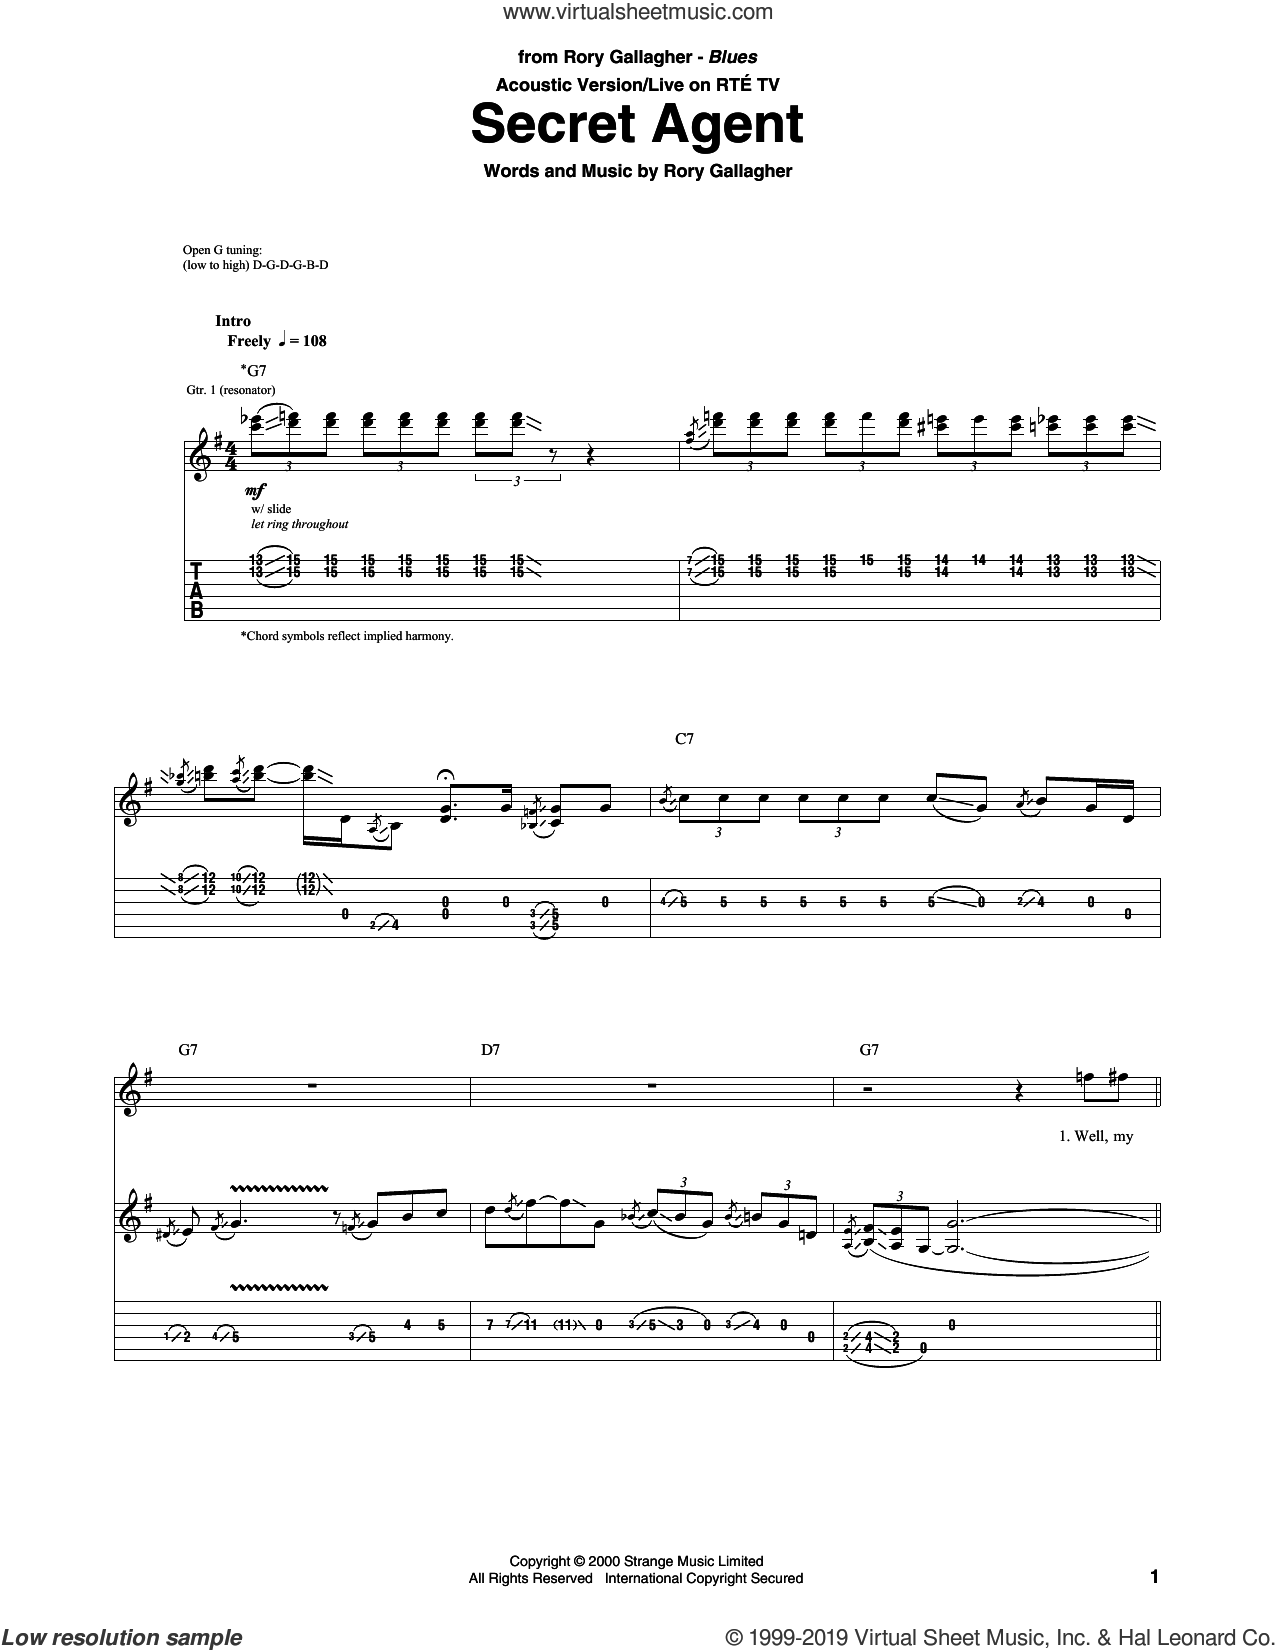 Secret Agent sheet music for guitar (tablature) by Rory Gallagher, intermediate skill level